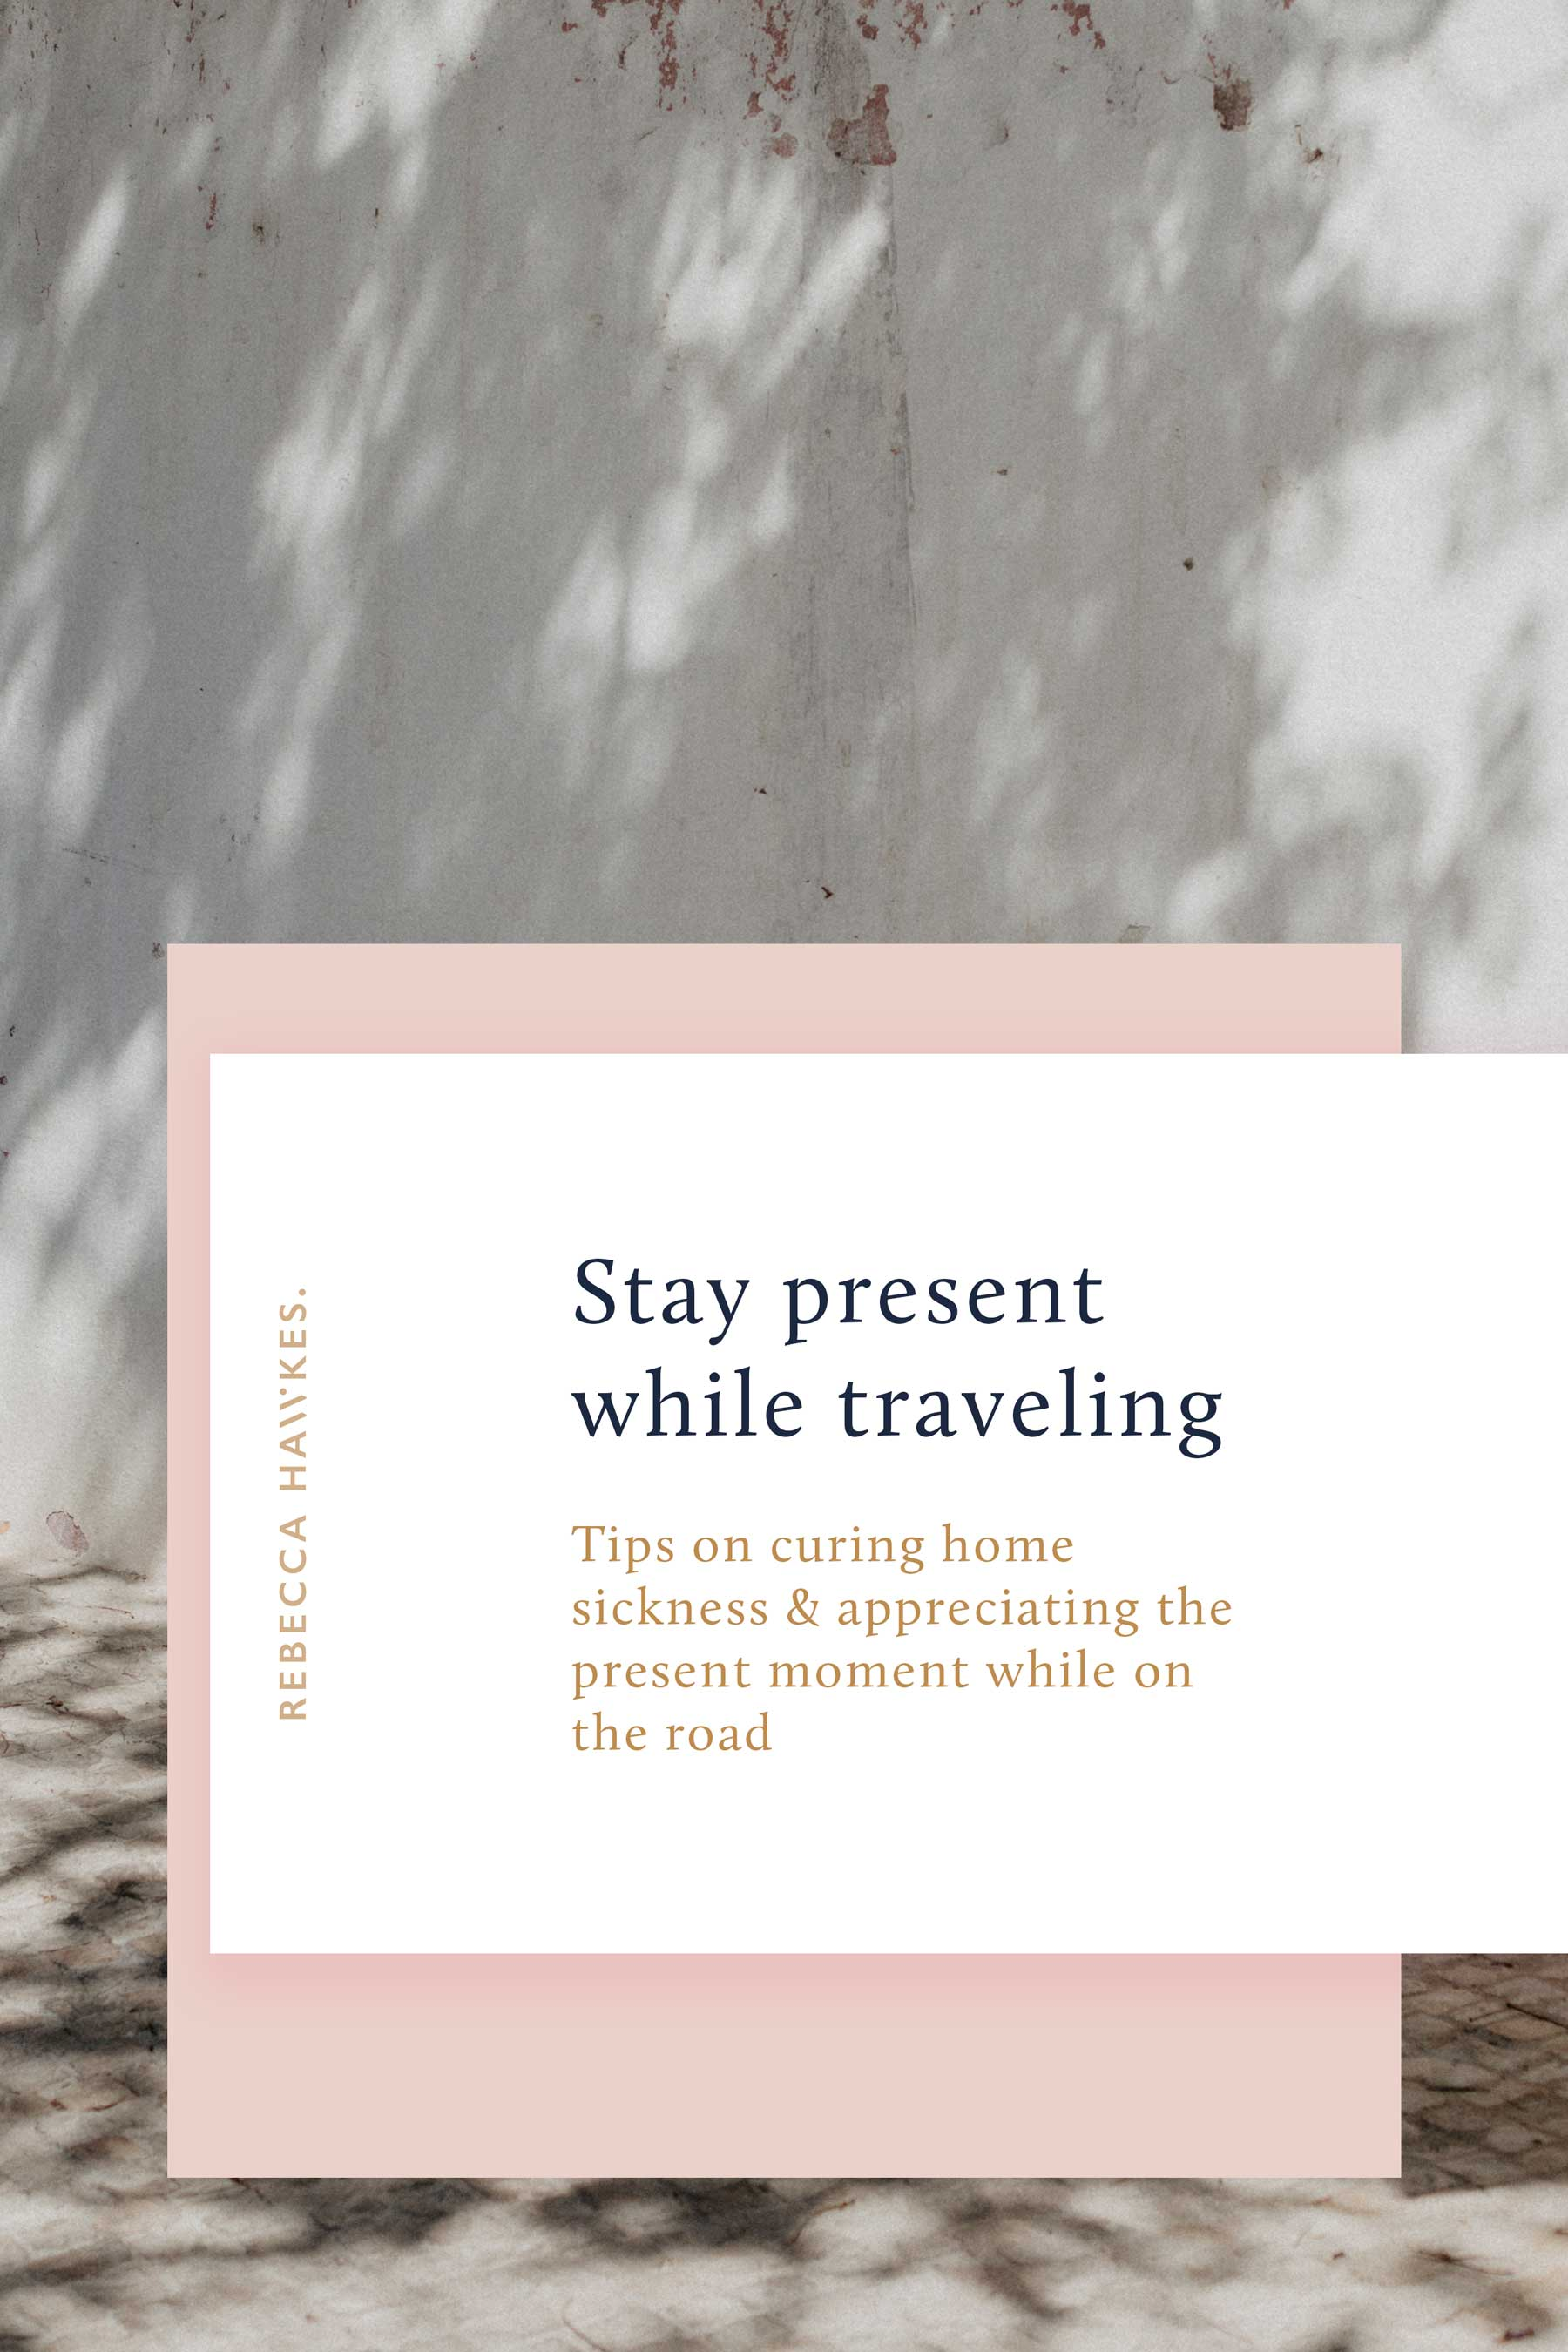 Stay present while traveling Tips on curing home sickness & appreciating the present moment while on the road